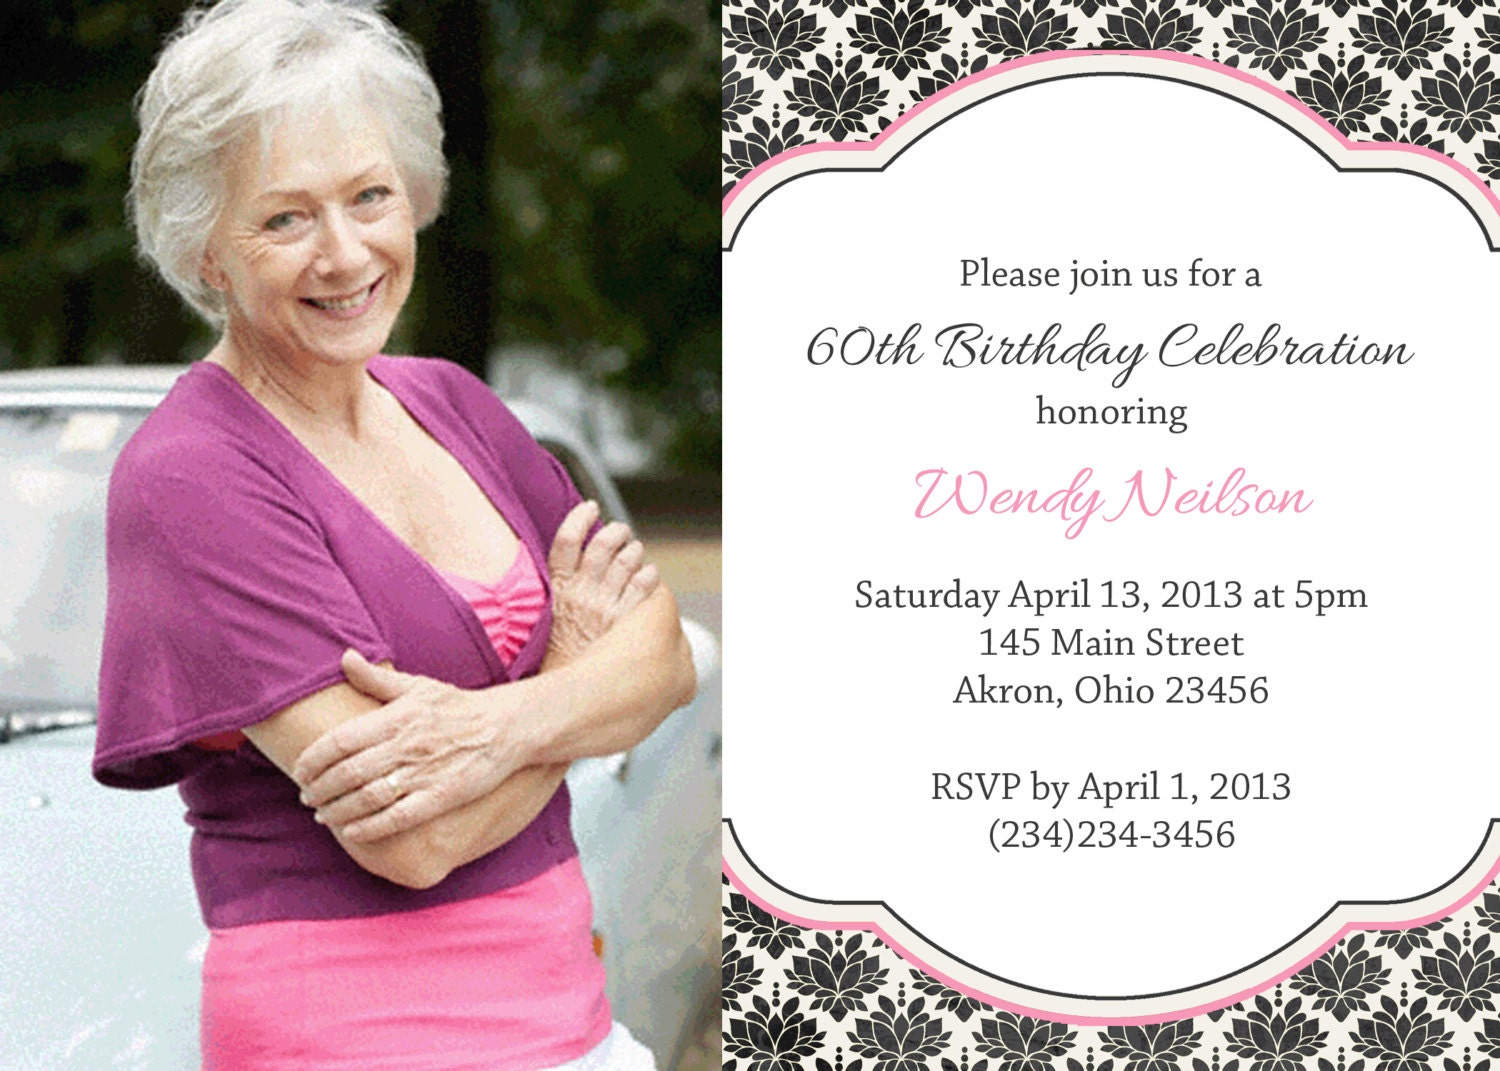 90Th Birthday Invitation Templates for beautiful invitation template